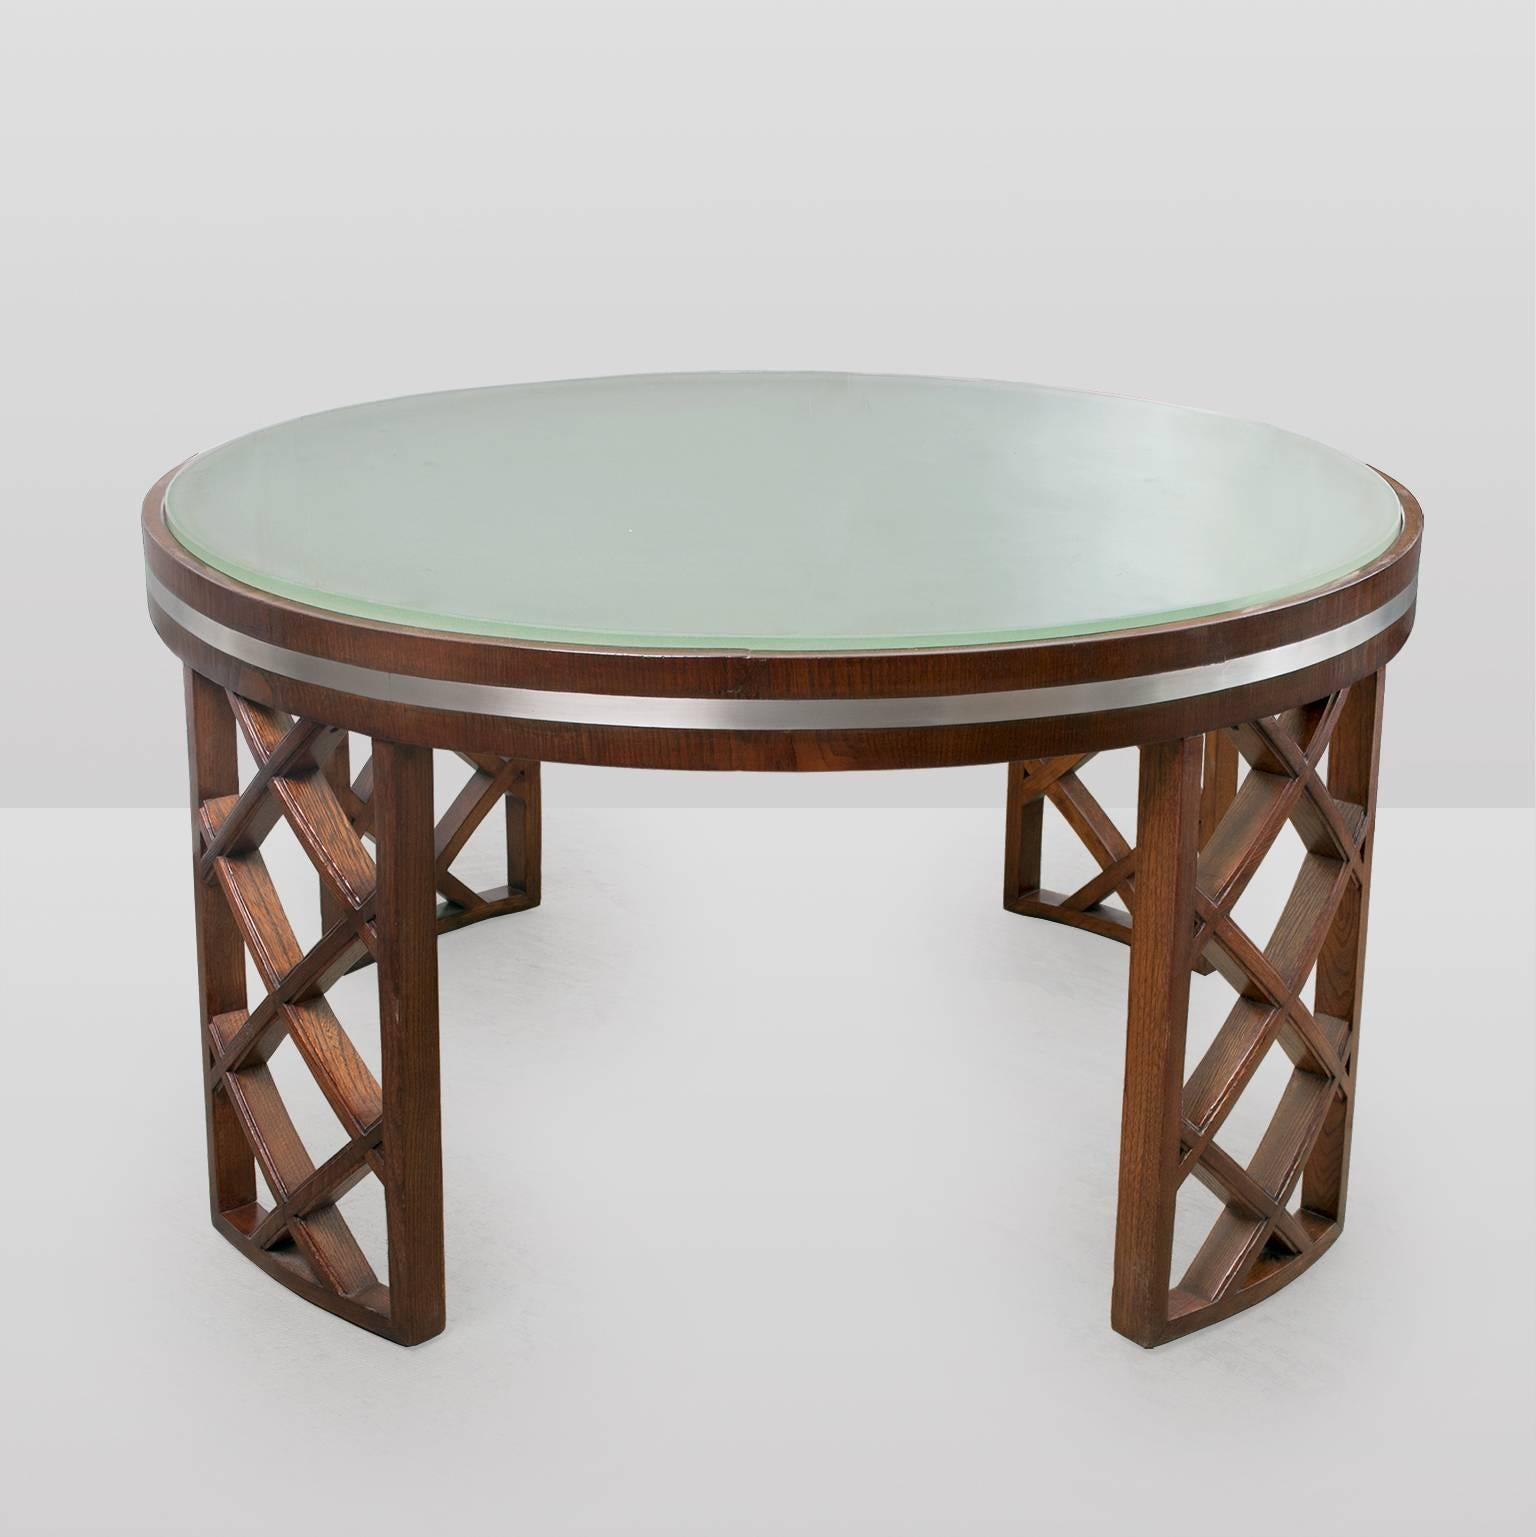 Scandinavian Modern Coffee Table With Lattice Legs Metal Inlay Acid Etched  Top For Sale At 1stdibs